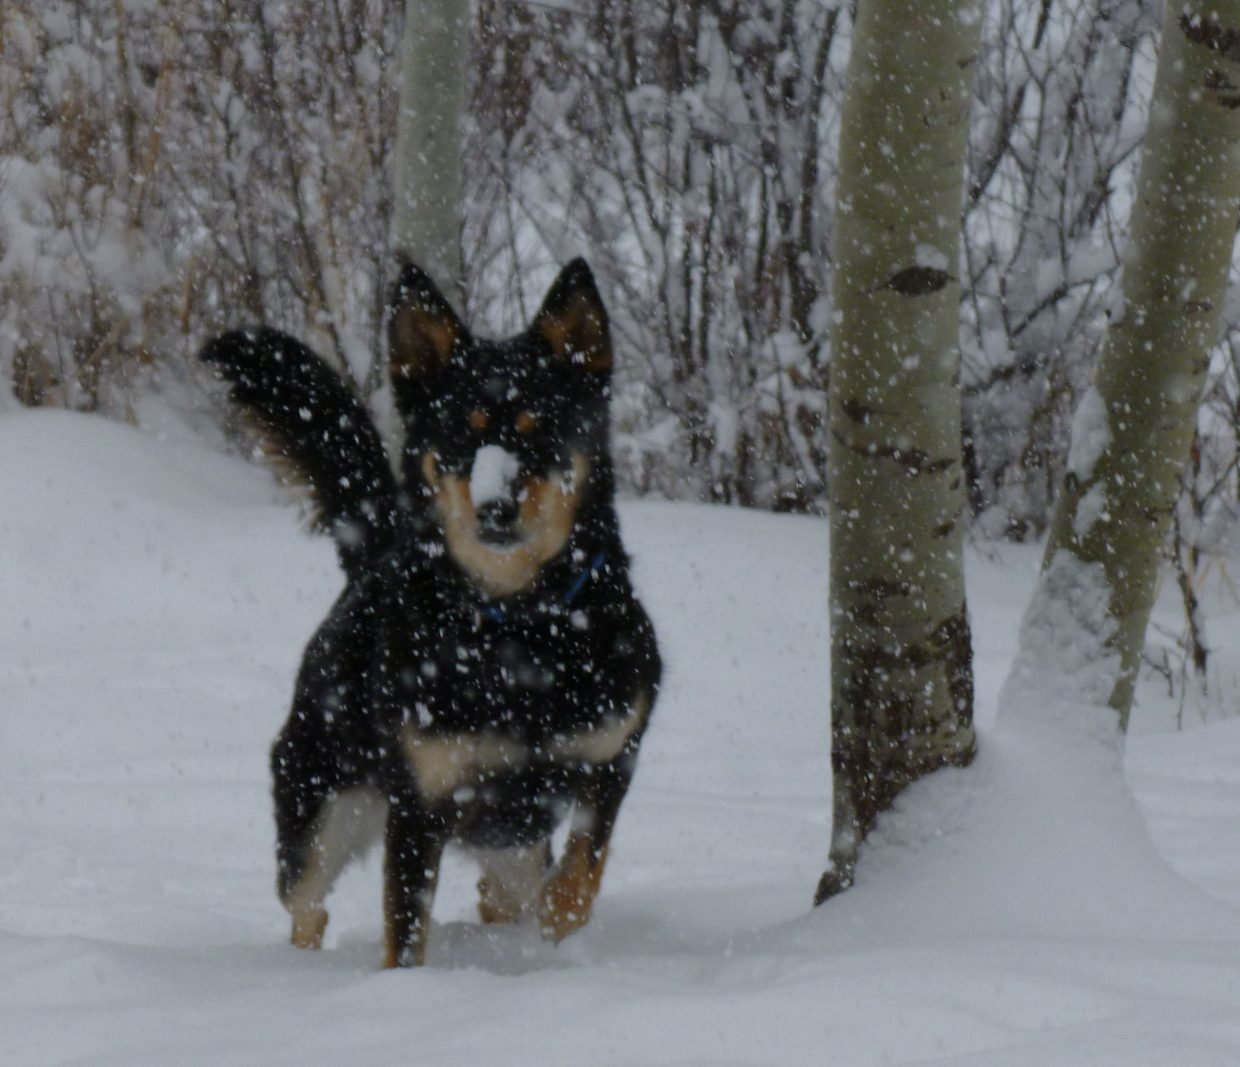 Casper enjoying the fresh powder. Photo submitted by Allison Keating